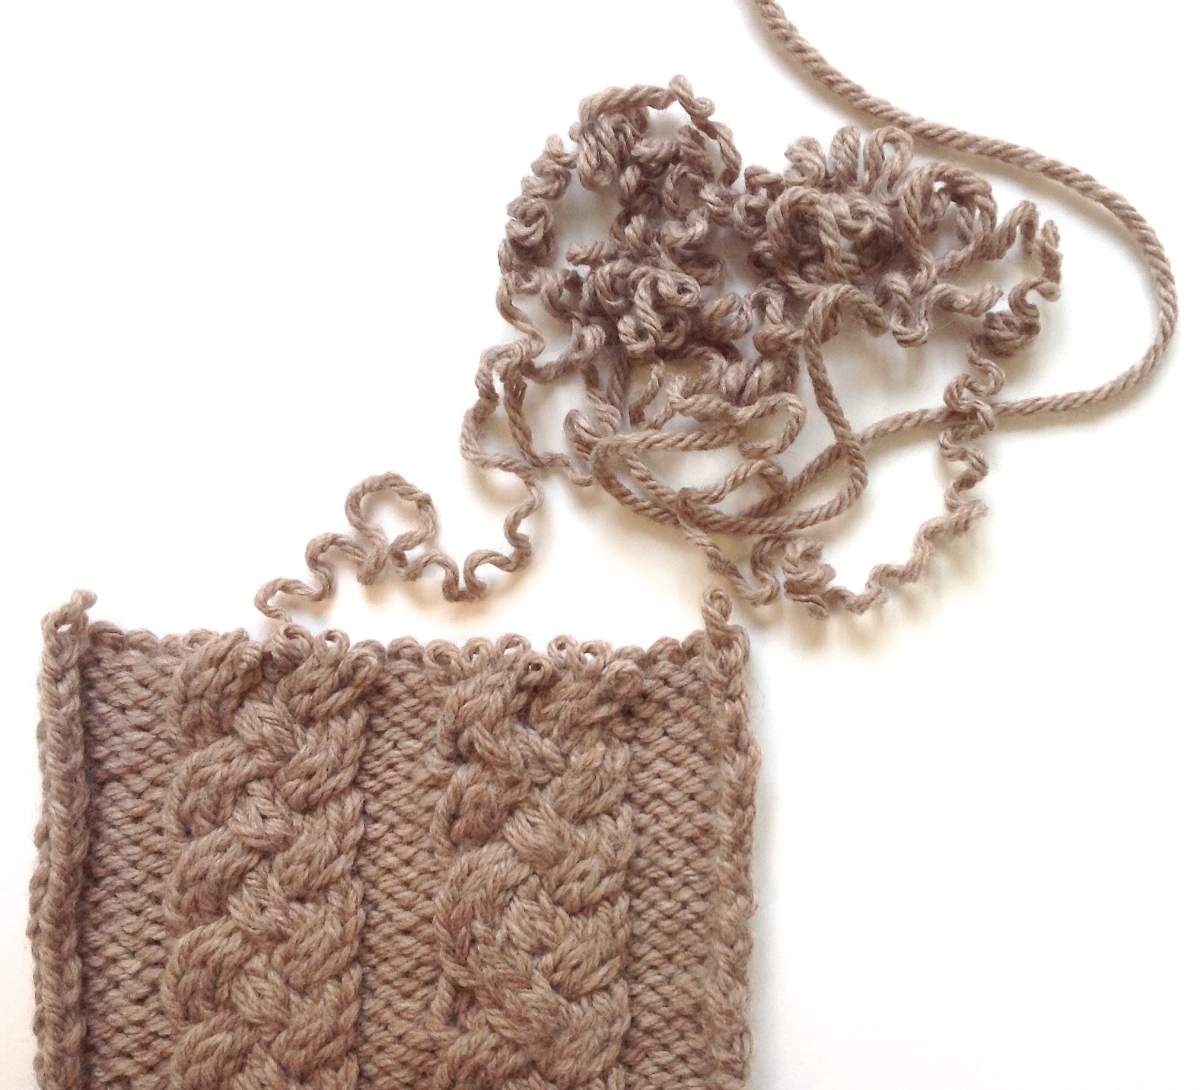 Knitting Unraveling Stitches : Emily Explains: What if I have to unravel my knitting again? Is this okay?